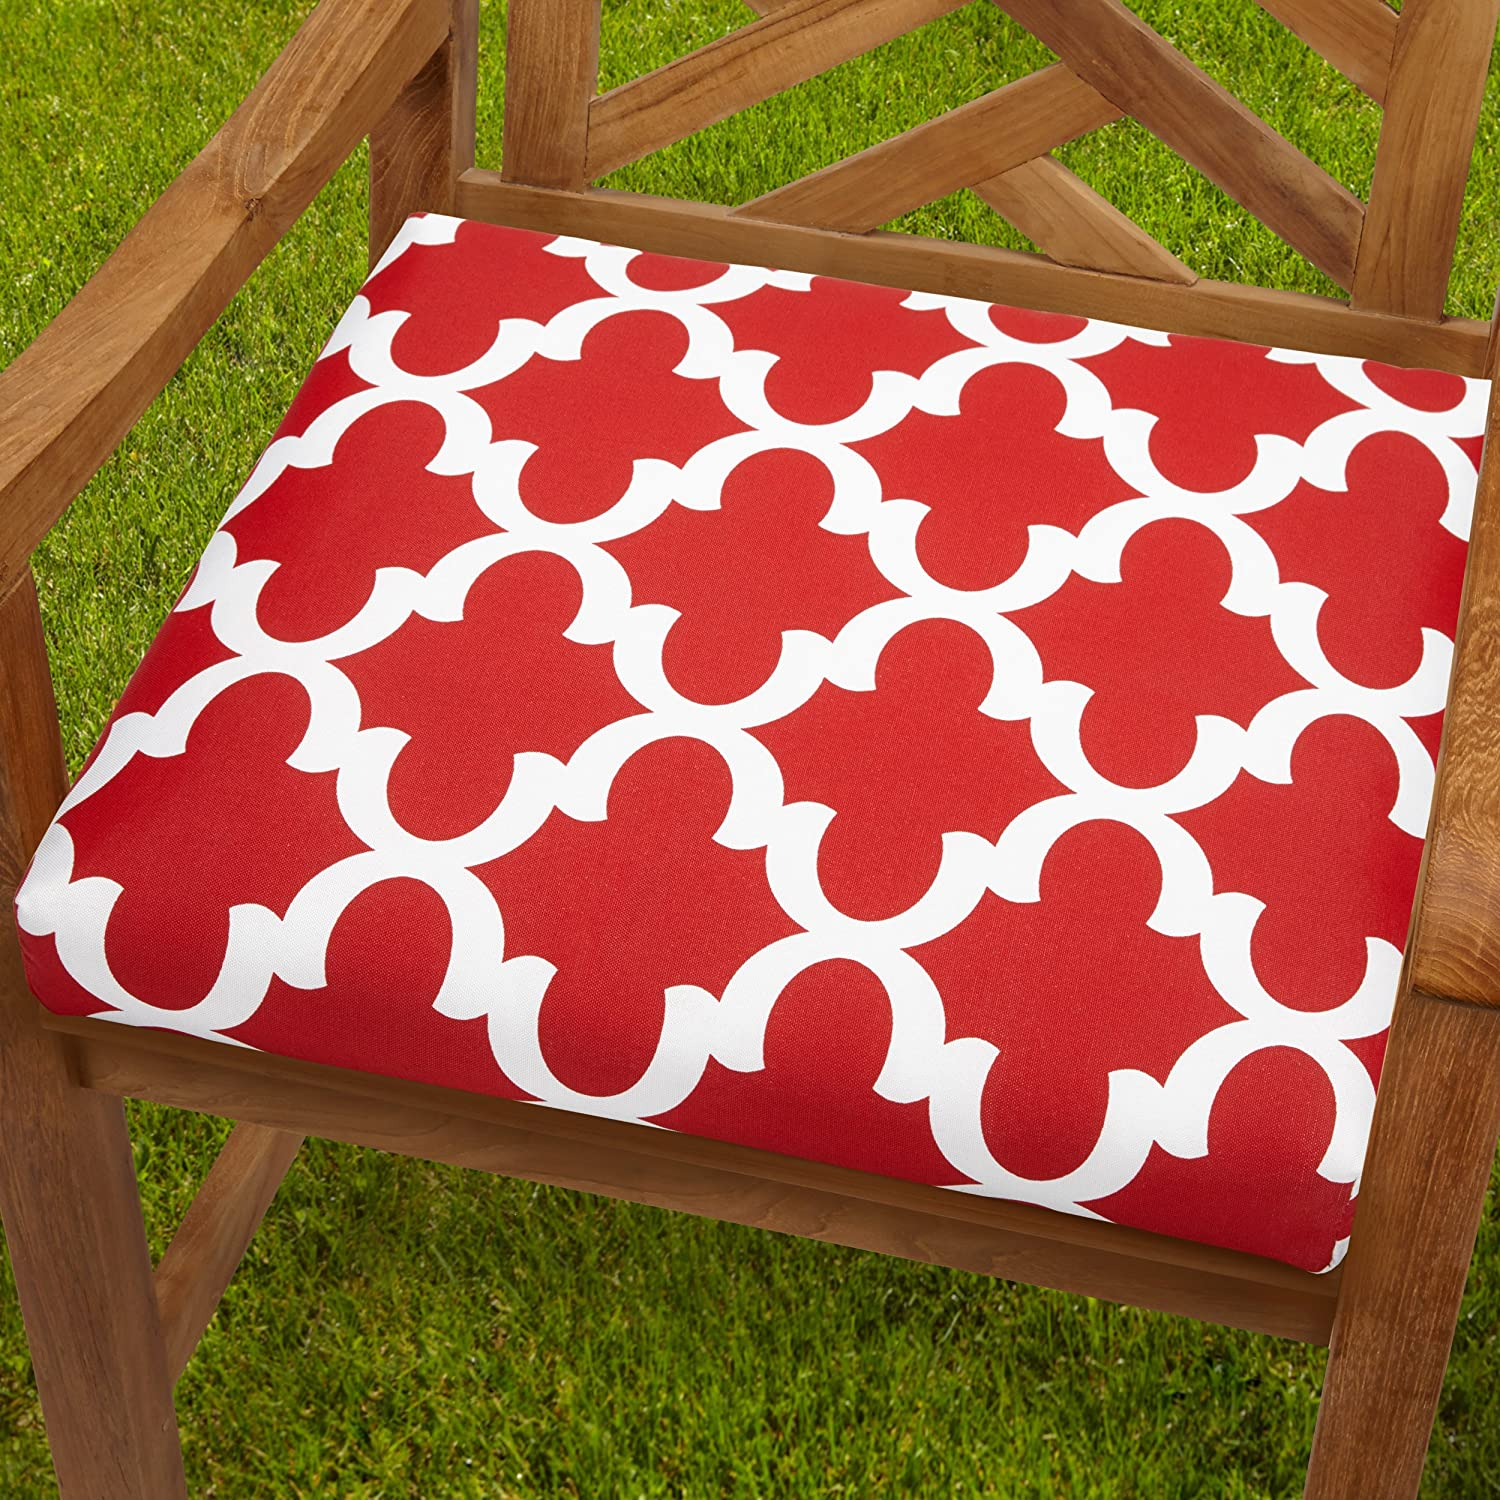 Mozaic AZCS2955 Indoor or Outdoor Square Chair Seat Cushions Set, Set of 2, 19 inches, Red White